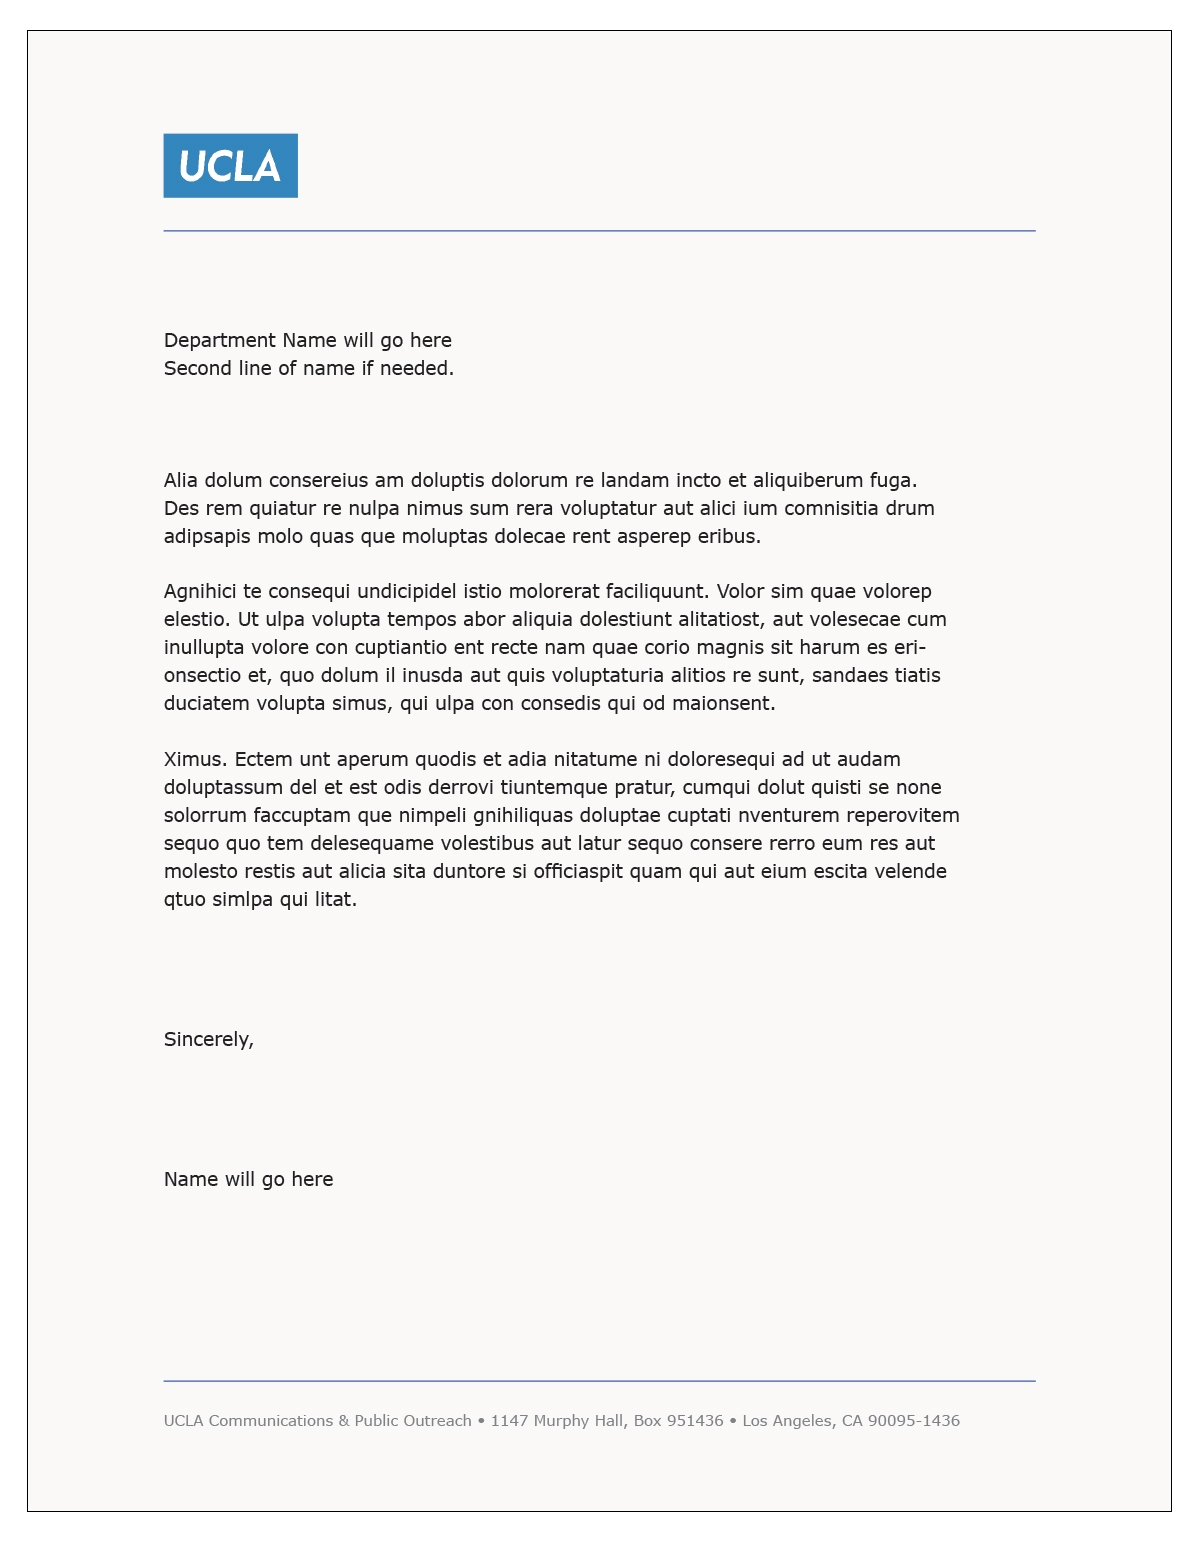 Professional Letter Heading Template - Lindatellingtonjones Resume formats and Template Frees